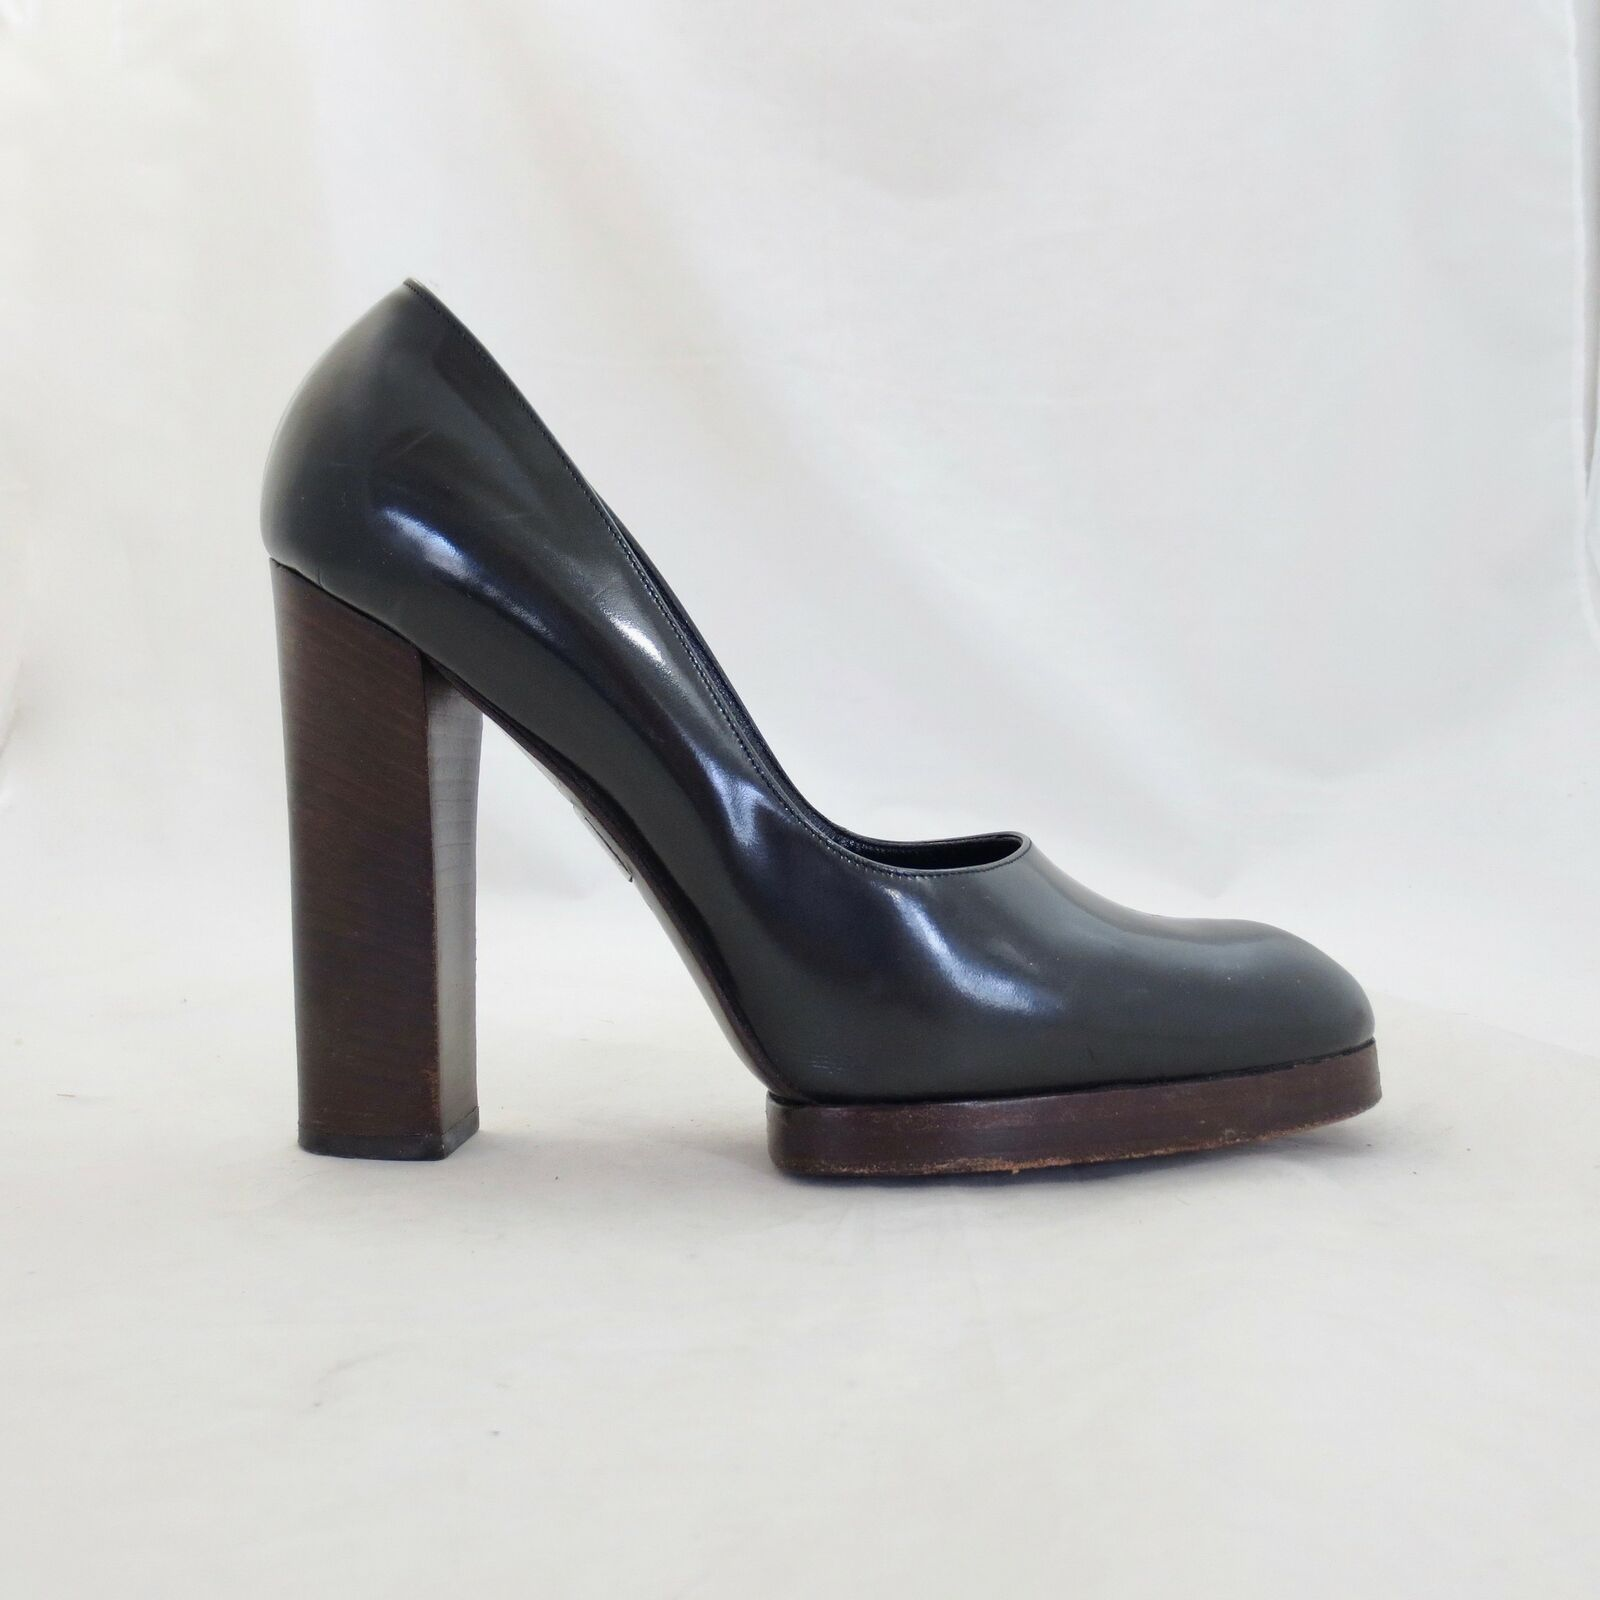 Primary image for 9.5 - Gucci Black Smooth Leather Platform High Block Heel Pumps Shoes 0424CR